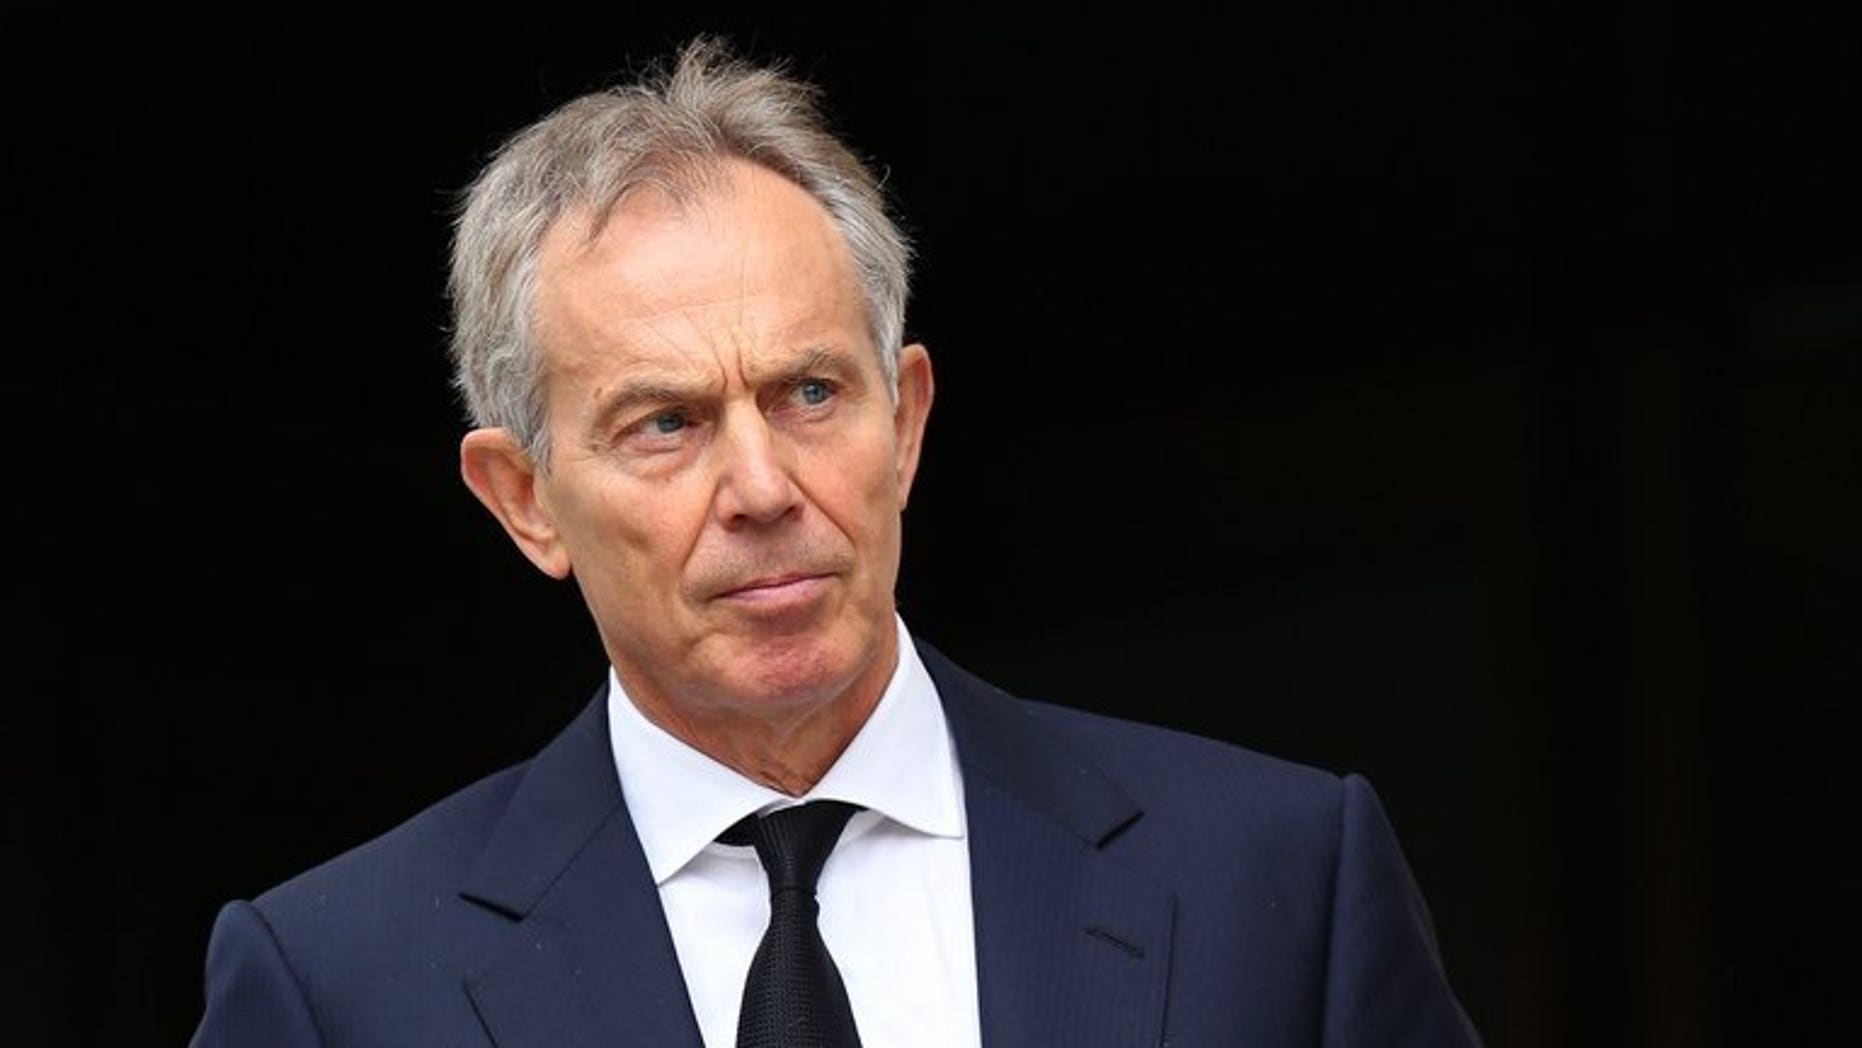 Former British prime minister Tony Blair pictured at St Paul's Cathedral in central London on April 17, 2013. Zimbabwe President Robert Mugabe on Tuesday said Blair was to blame for his country's problems on the eve of a crucial general election.